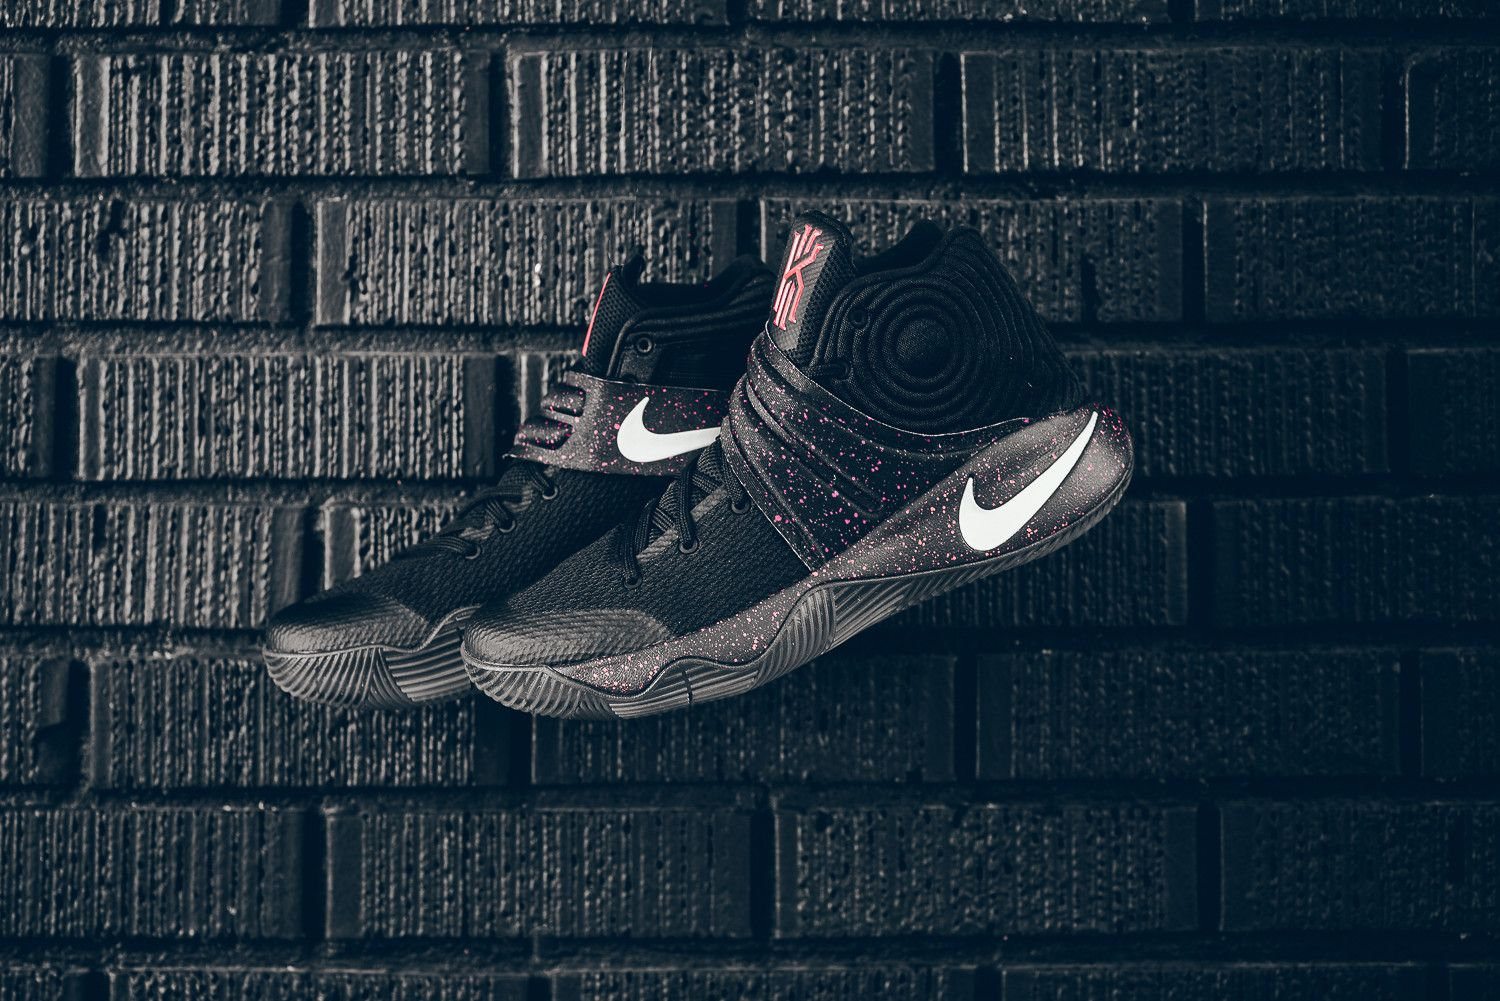 a1b5f794ab31 A Black Upper And Bright Crimson Speckling Highlight This Nike Kyrie ...